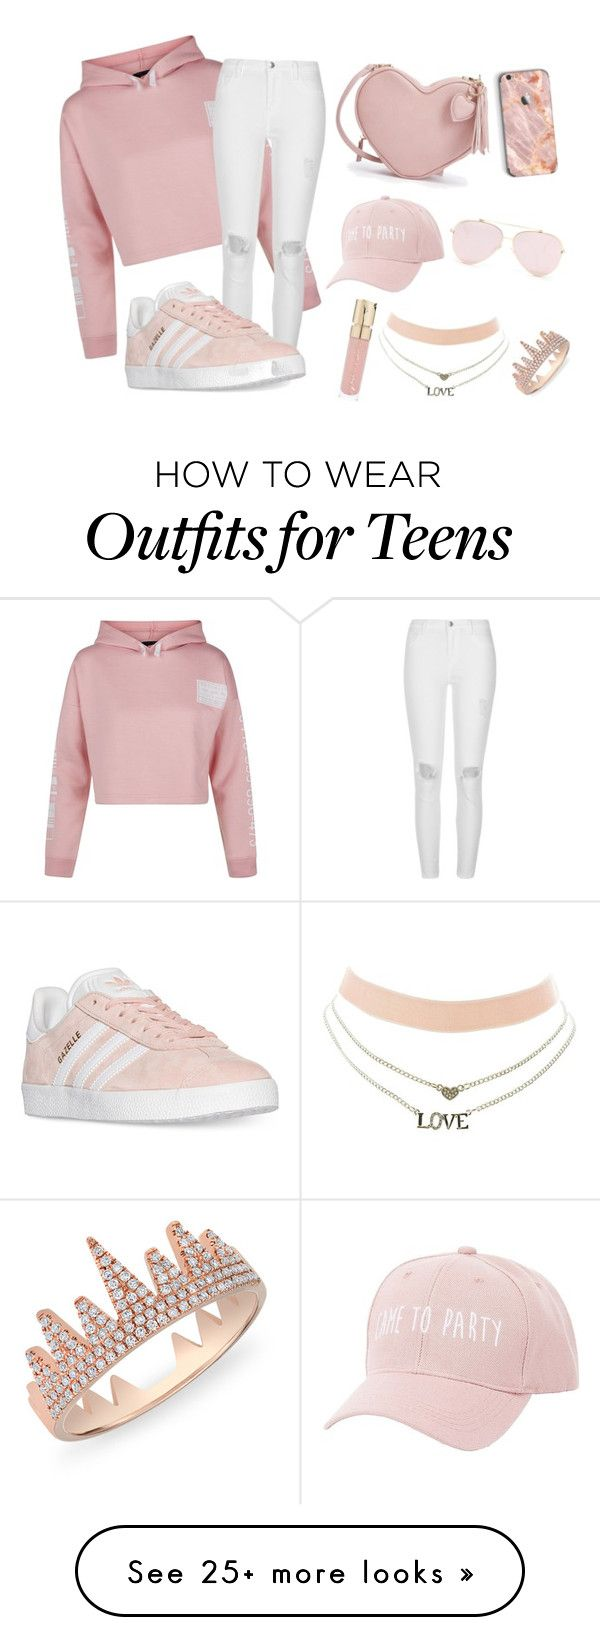 """""""peach"""" by afrahoran on Polyvore featuring New Look, River Island, adidas, Charlotte Russe, Smith & Cult and Anne Sisteron"""